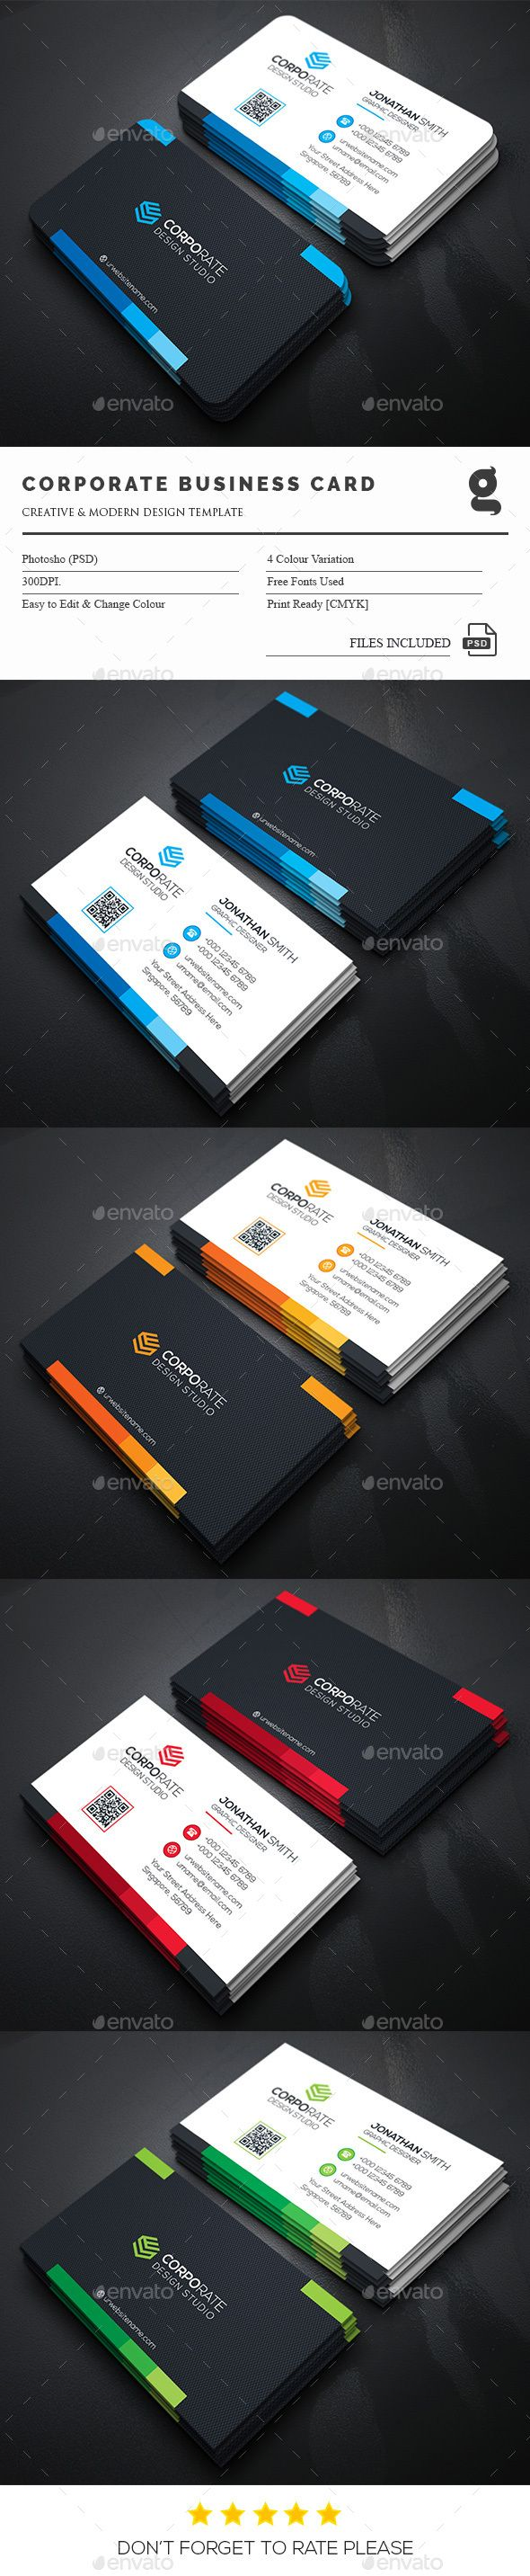 Corporate Business Card Template PSD. Download here: http://graphicriver.net/item/corporate-business-card/15098610?ref=ksioks